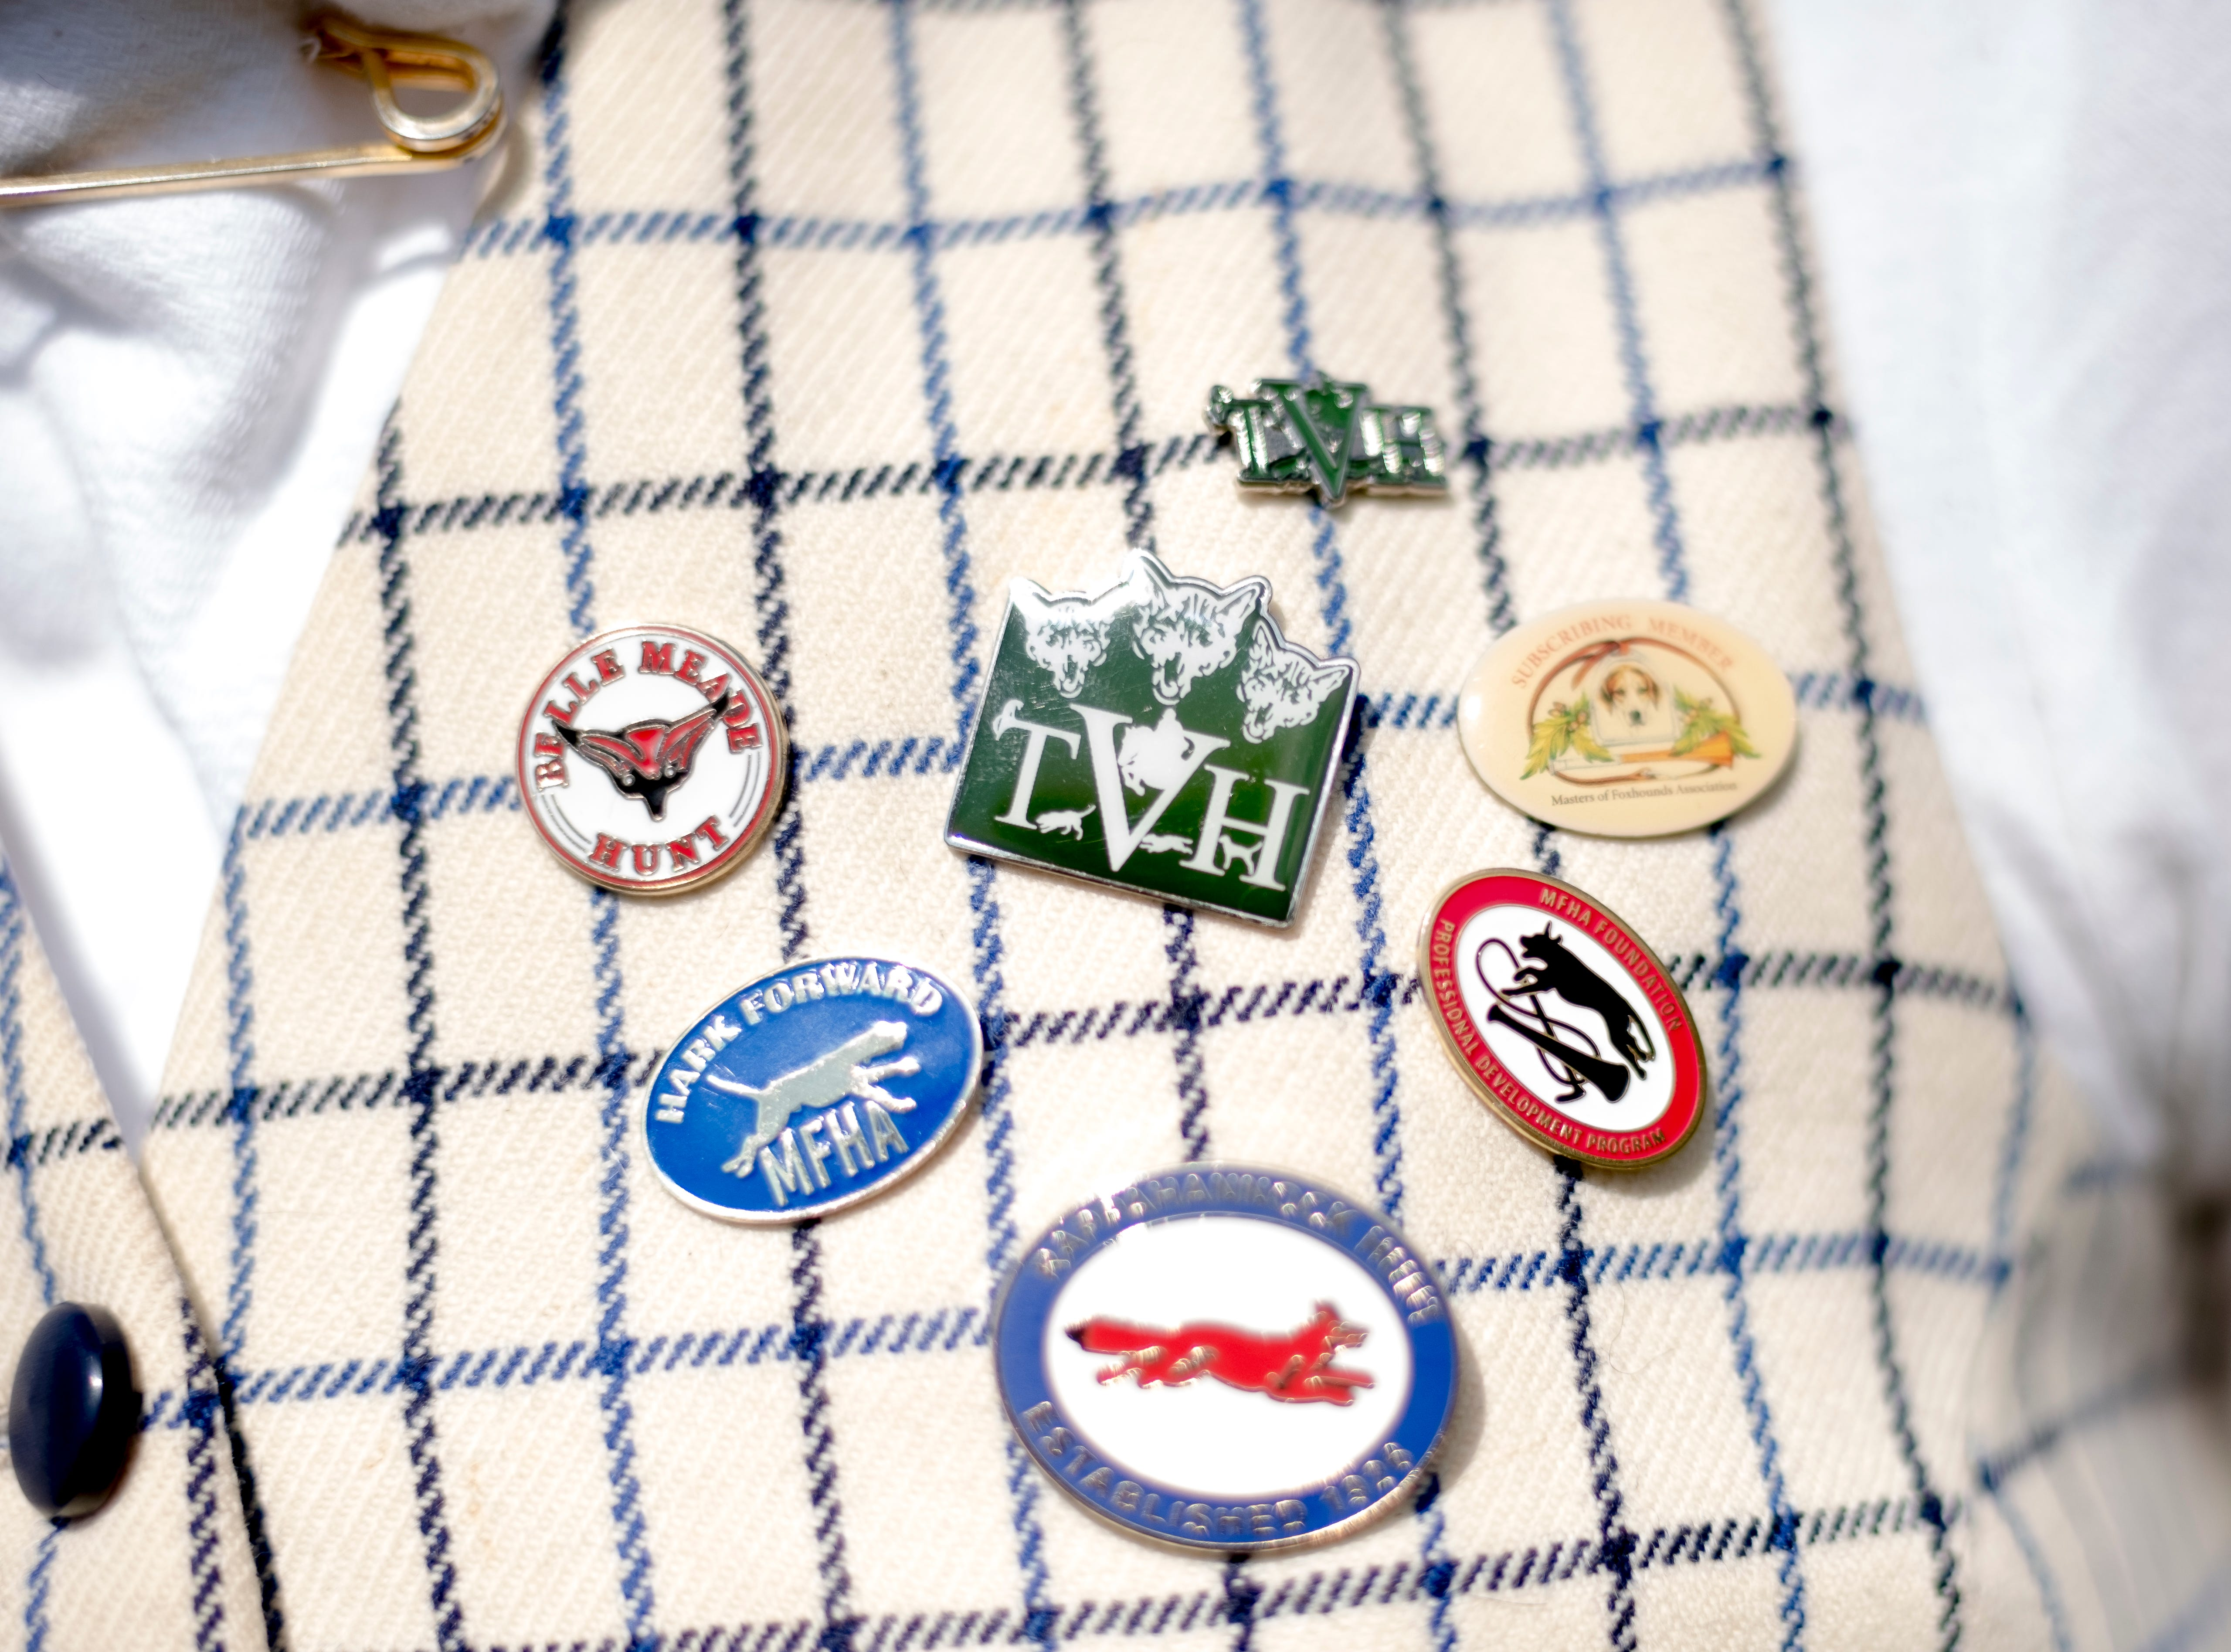 Casey Johnsey shows off her collection of fox hunting club pins during breakfast after a fixture at Riverplains Farm in Strawberry Plains, Tennessee on Wednesday, March 27, 2019.